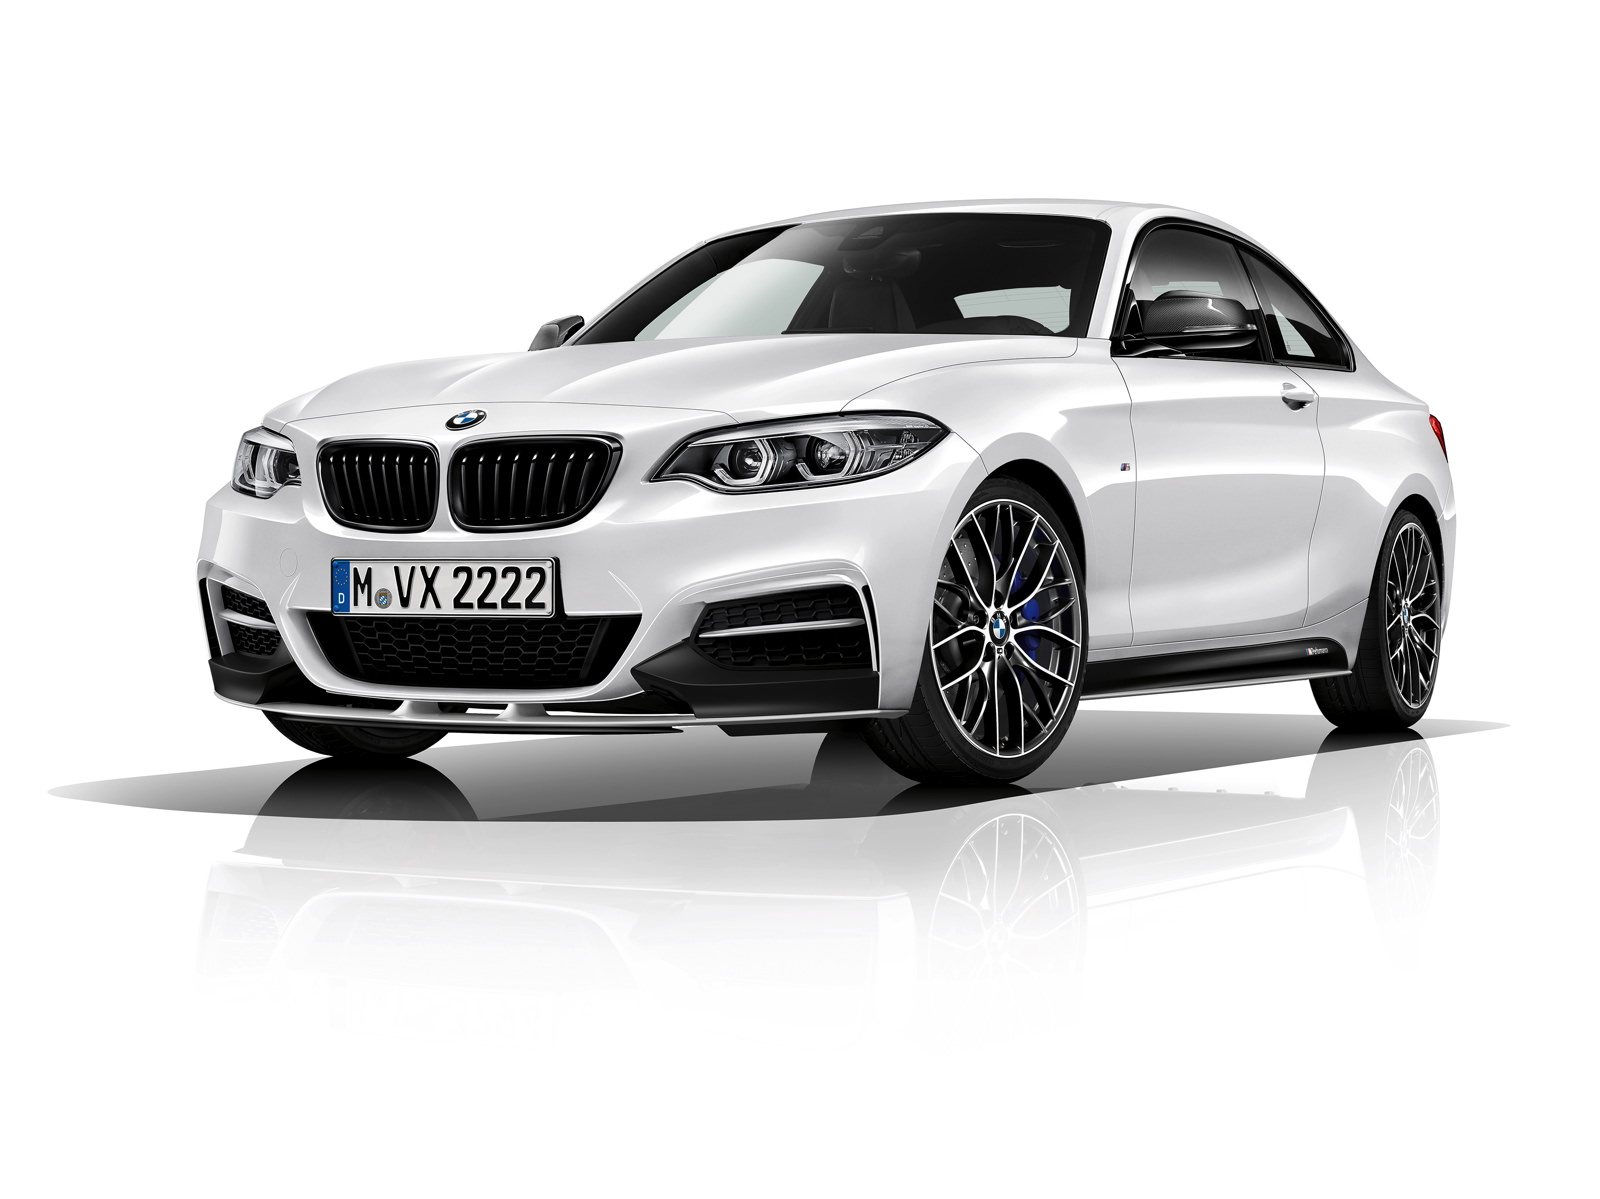 Bmw Introduces The M240i M Performance Edition Limited To